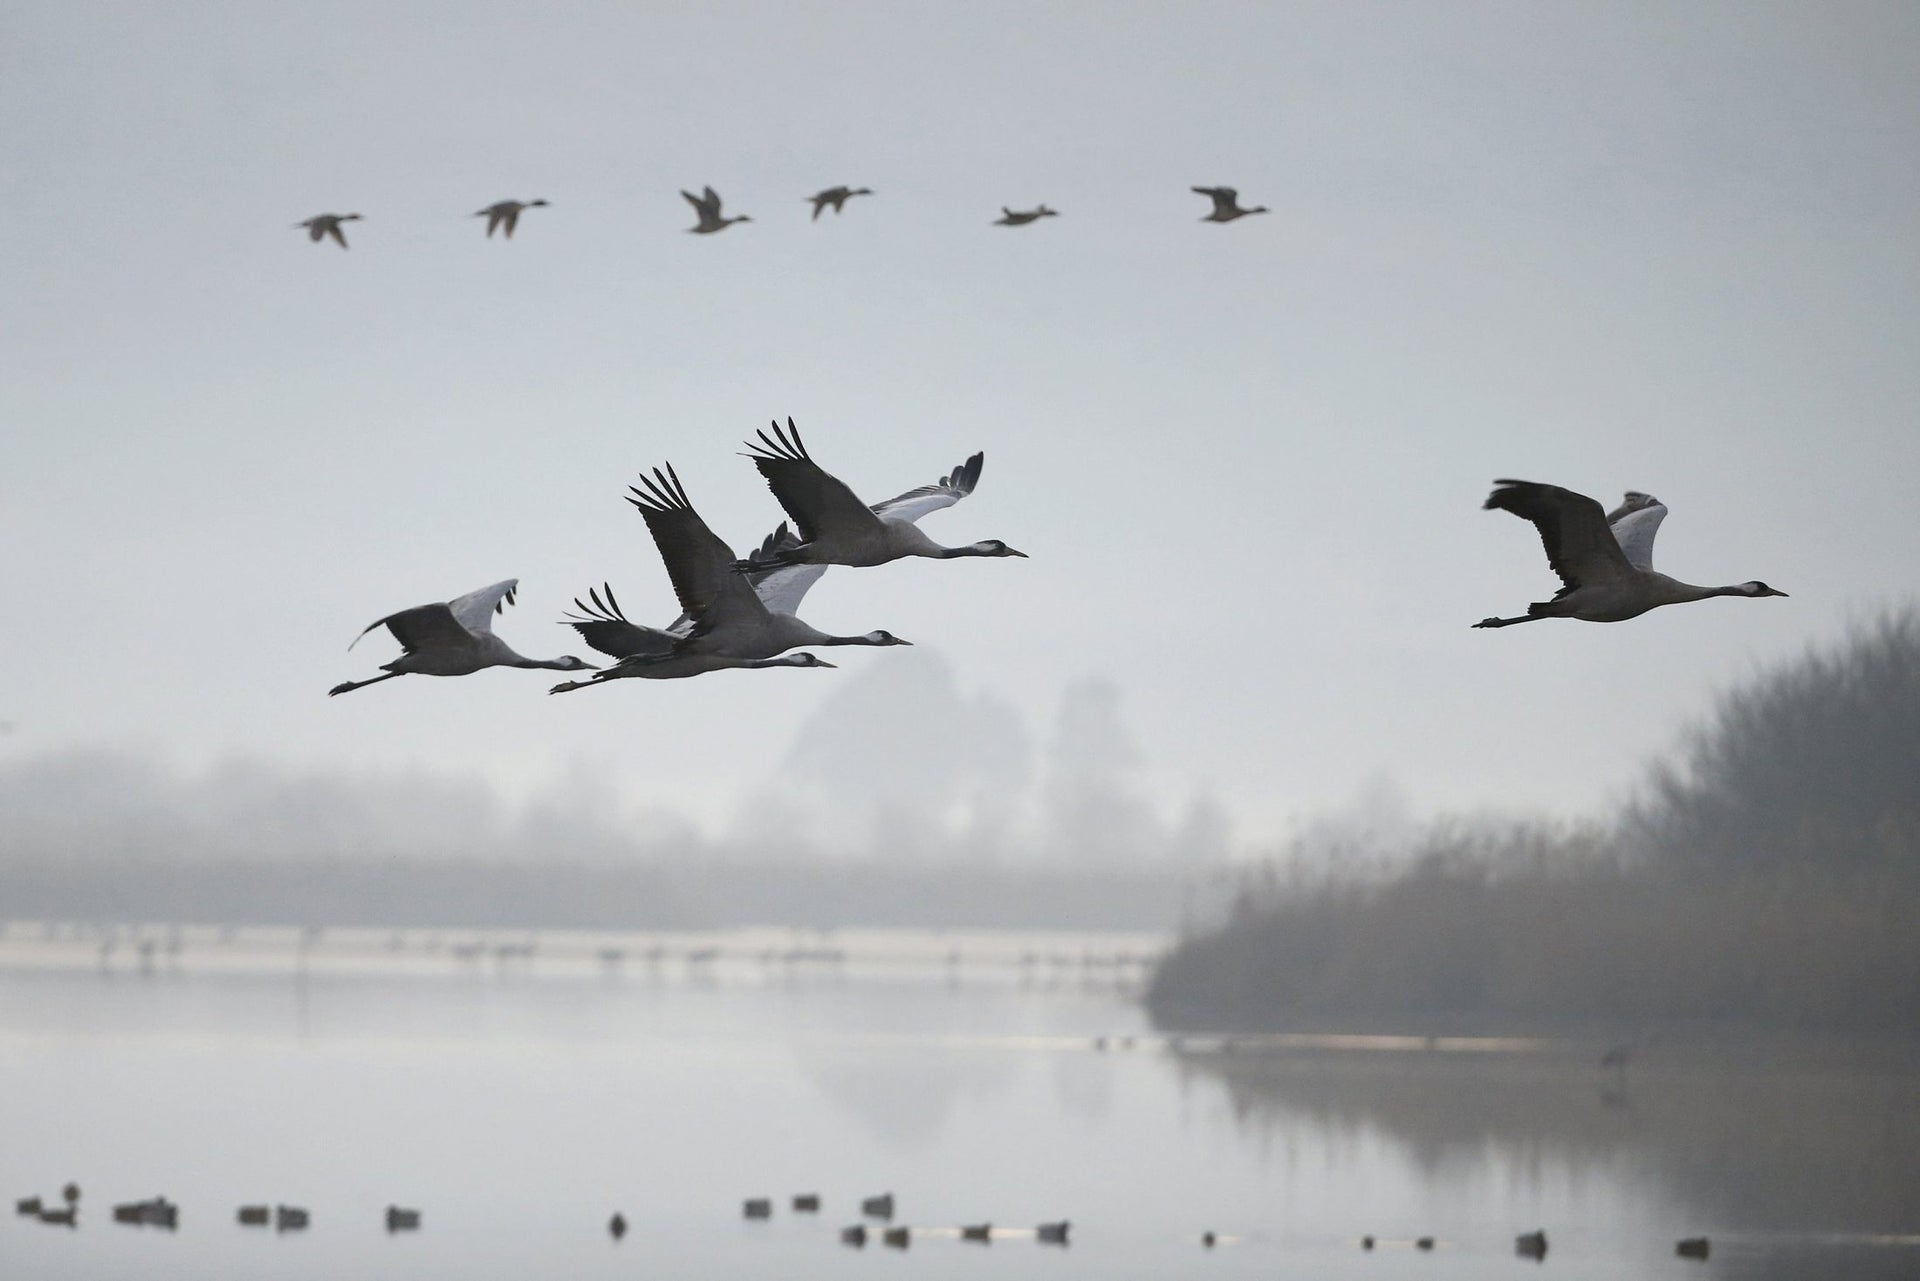 Migrating cranes fly over the Hula Lake Ornithology and Nature Park in northern Israel, February 14, 2016.